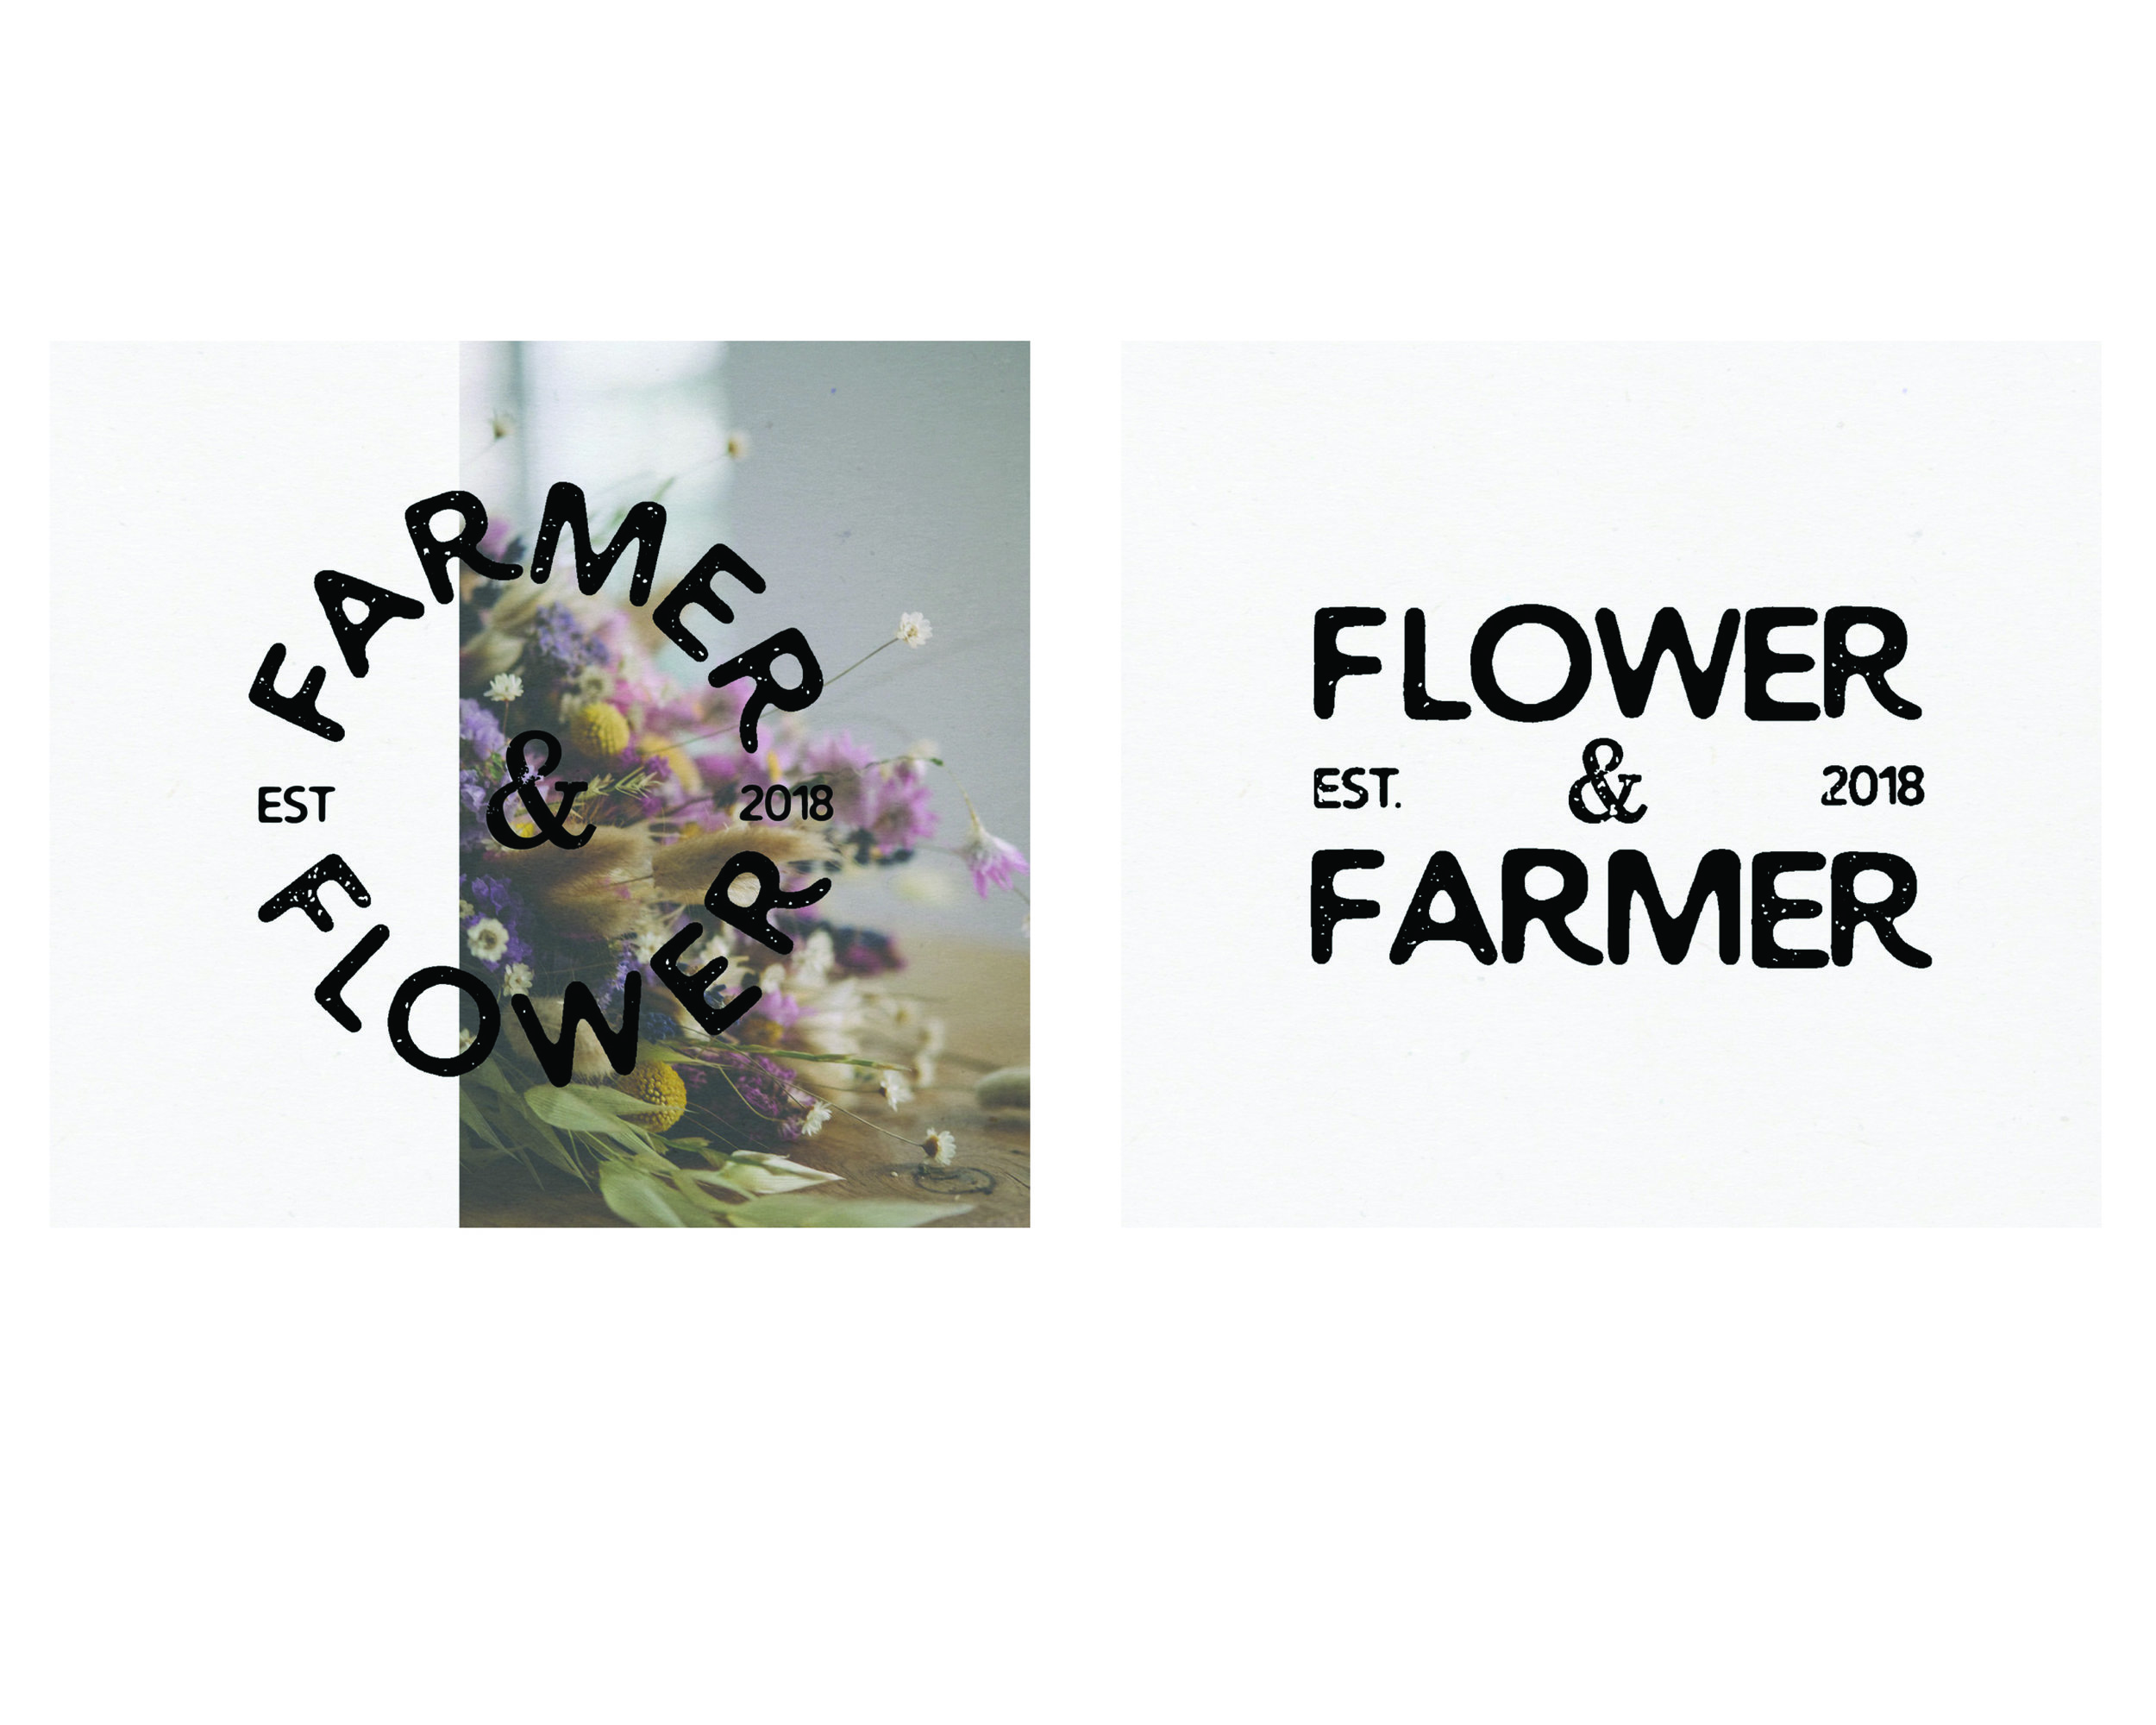 logo concept design for a pick-it-yourself flower farm set in the british countryside. inspired by old produce stamps, the branding has a rustic, handcrafted feel with romantic imperfections.